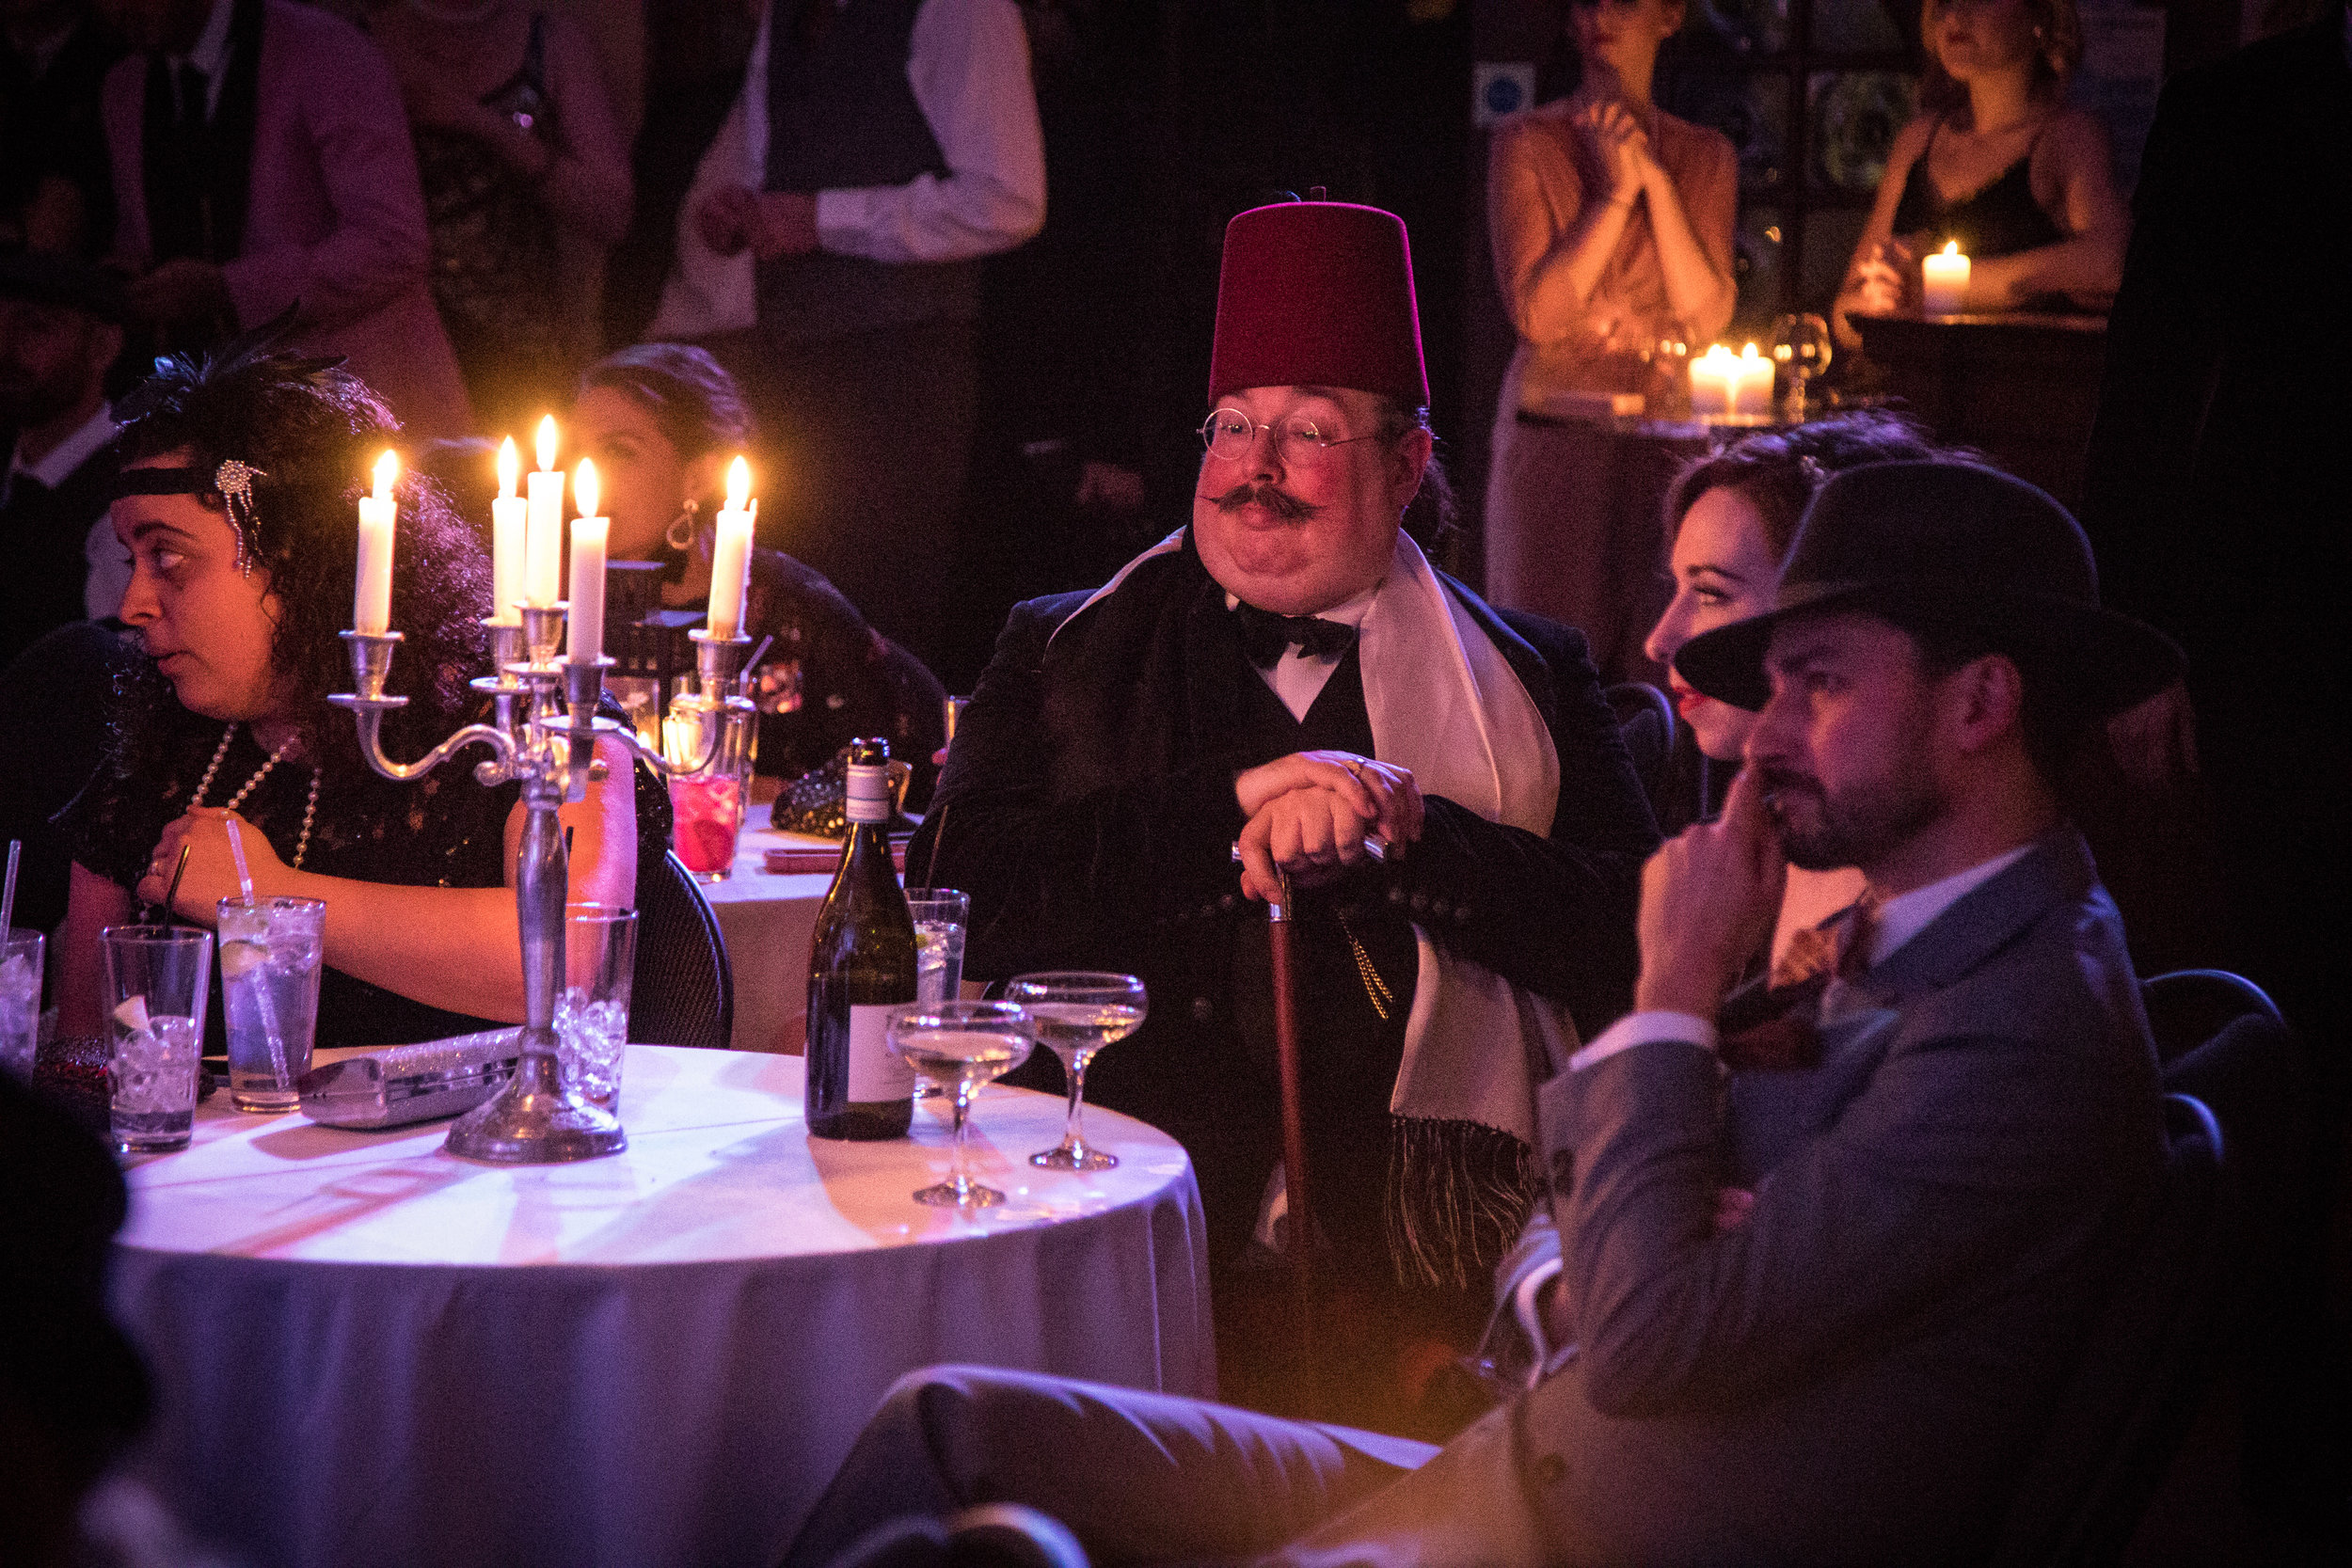 Guest in a fez at the Candlelight Club